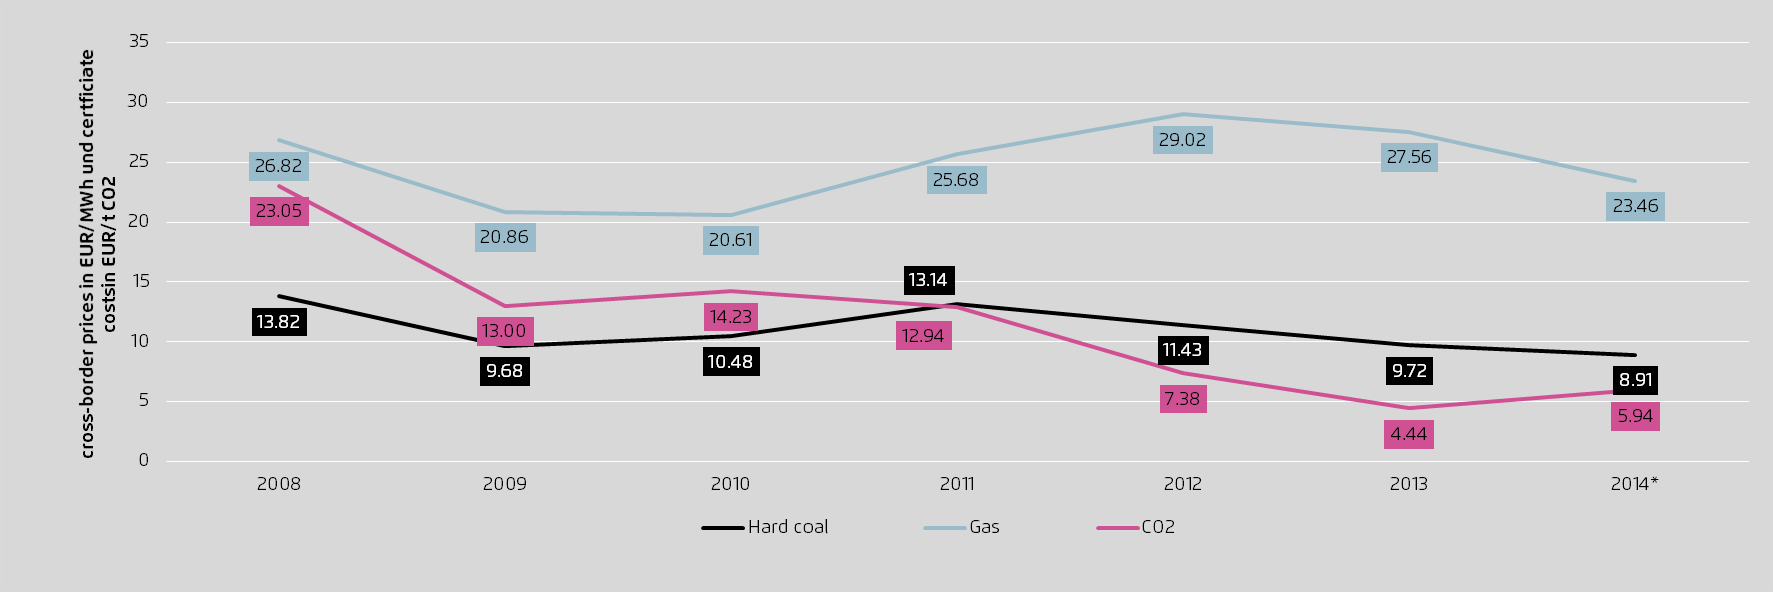 The gap in the coal and gas price has widened dramatically since 2010 and only narrowed slightly in 2014. CO 2 prices remained steady at low levels.